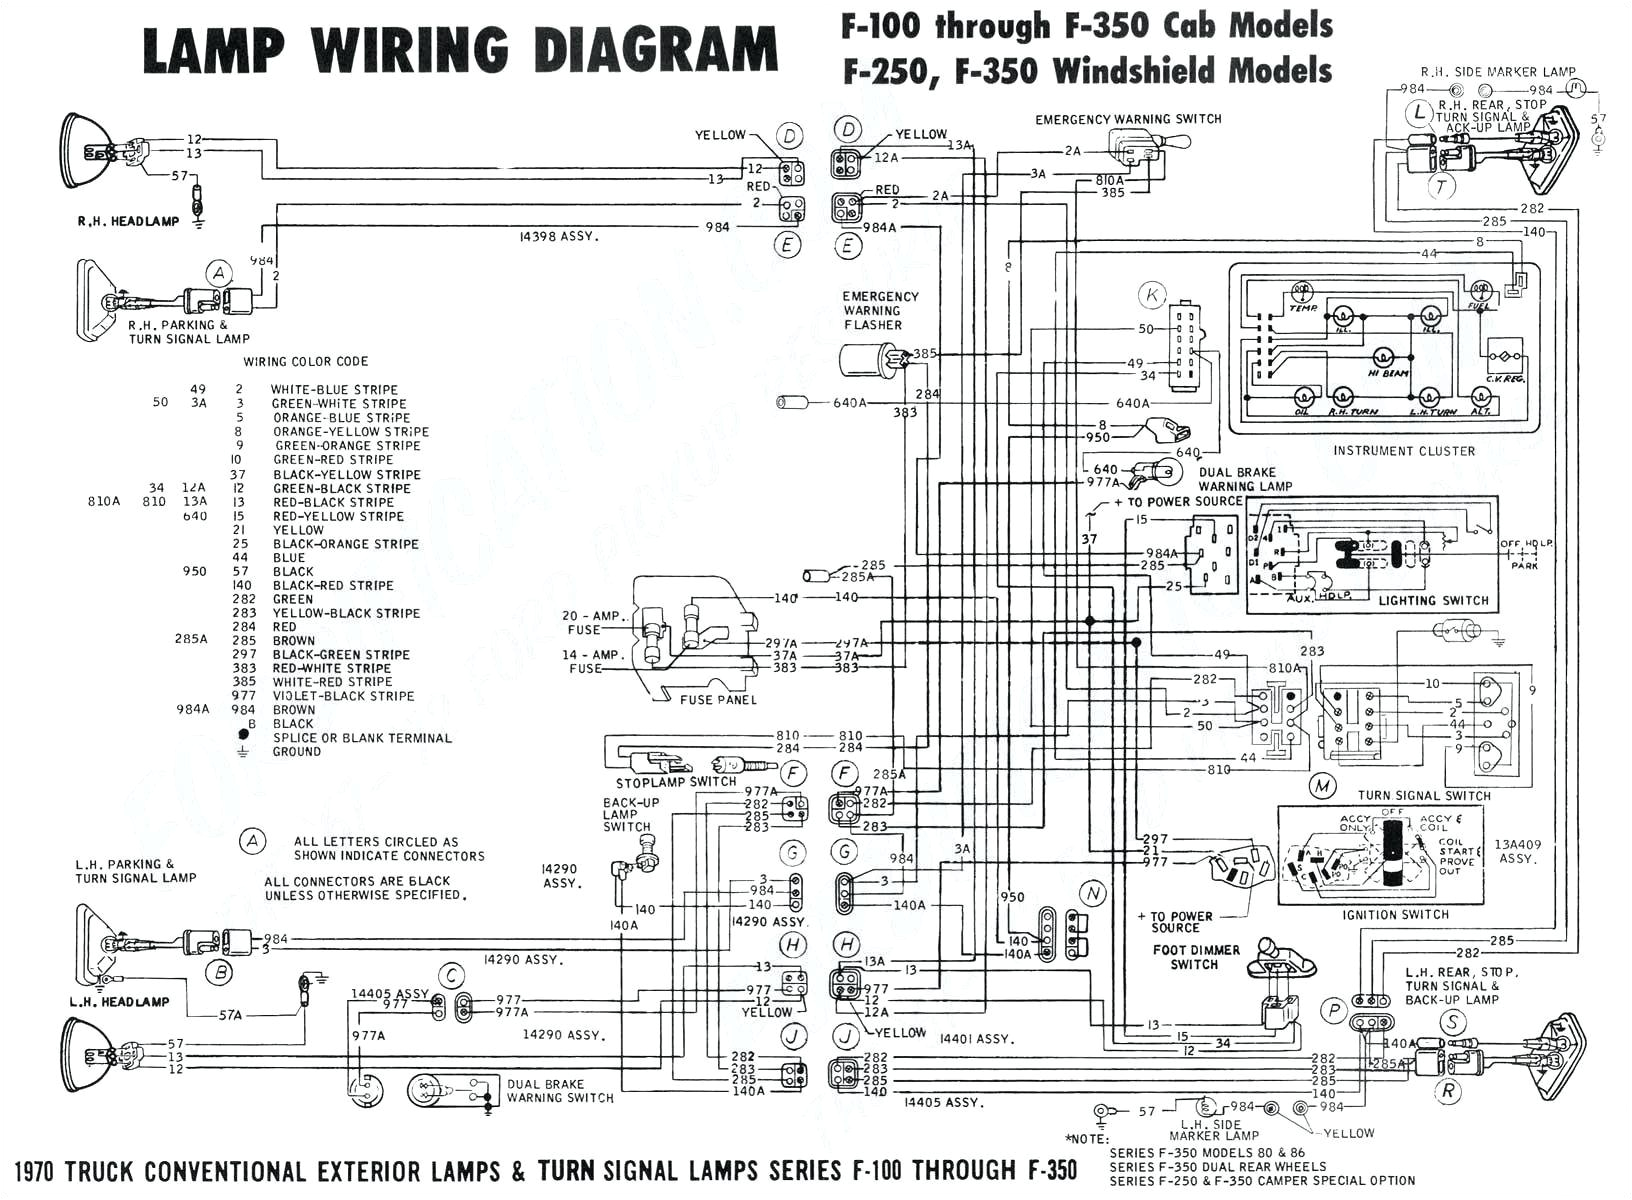 truck vacuum diagram furthermore ford 351 windsor engine besides diagram likewise 1995 ford bronco engine diagram besides 1995 buick